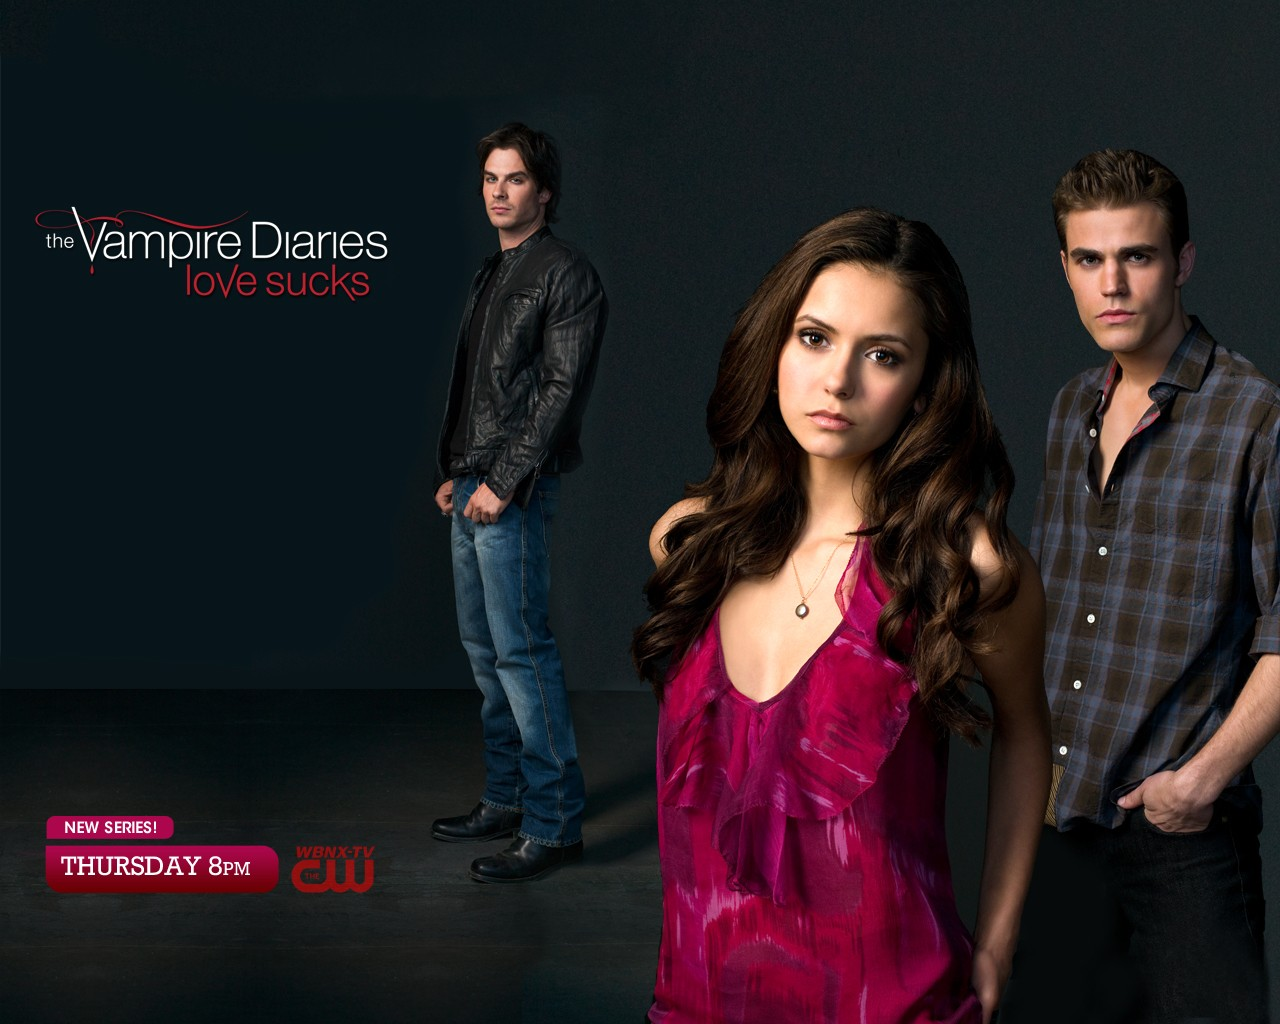 Wallpaper: i tre protagonisti della nuova serie tv The Vampire Diaries